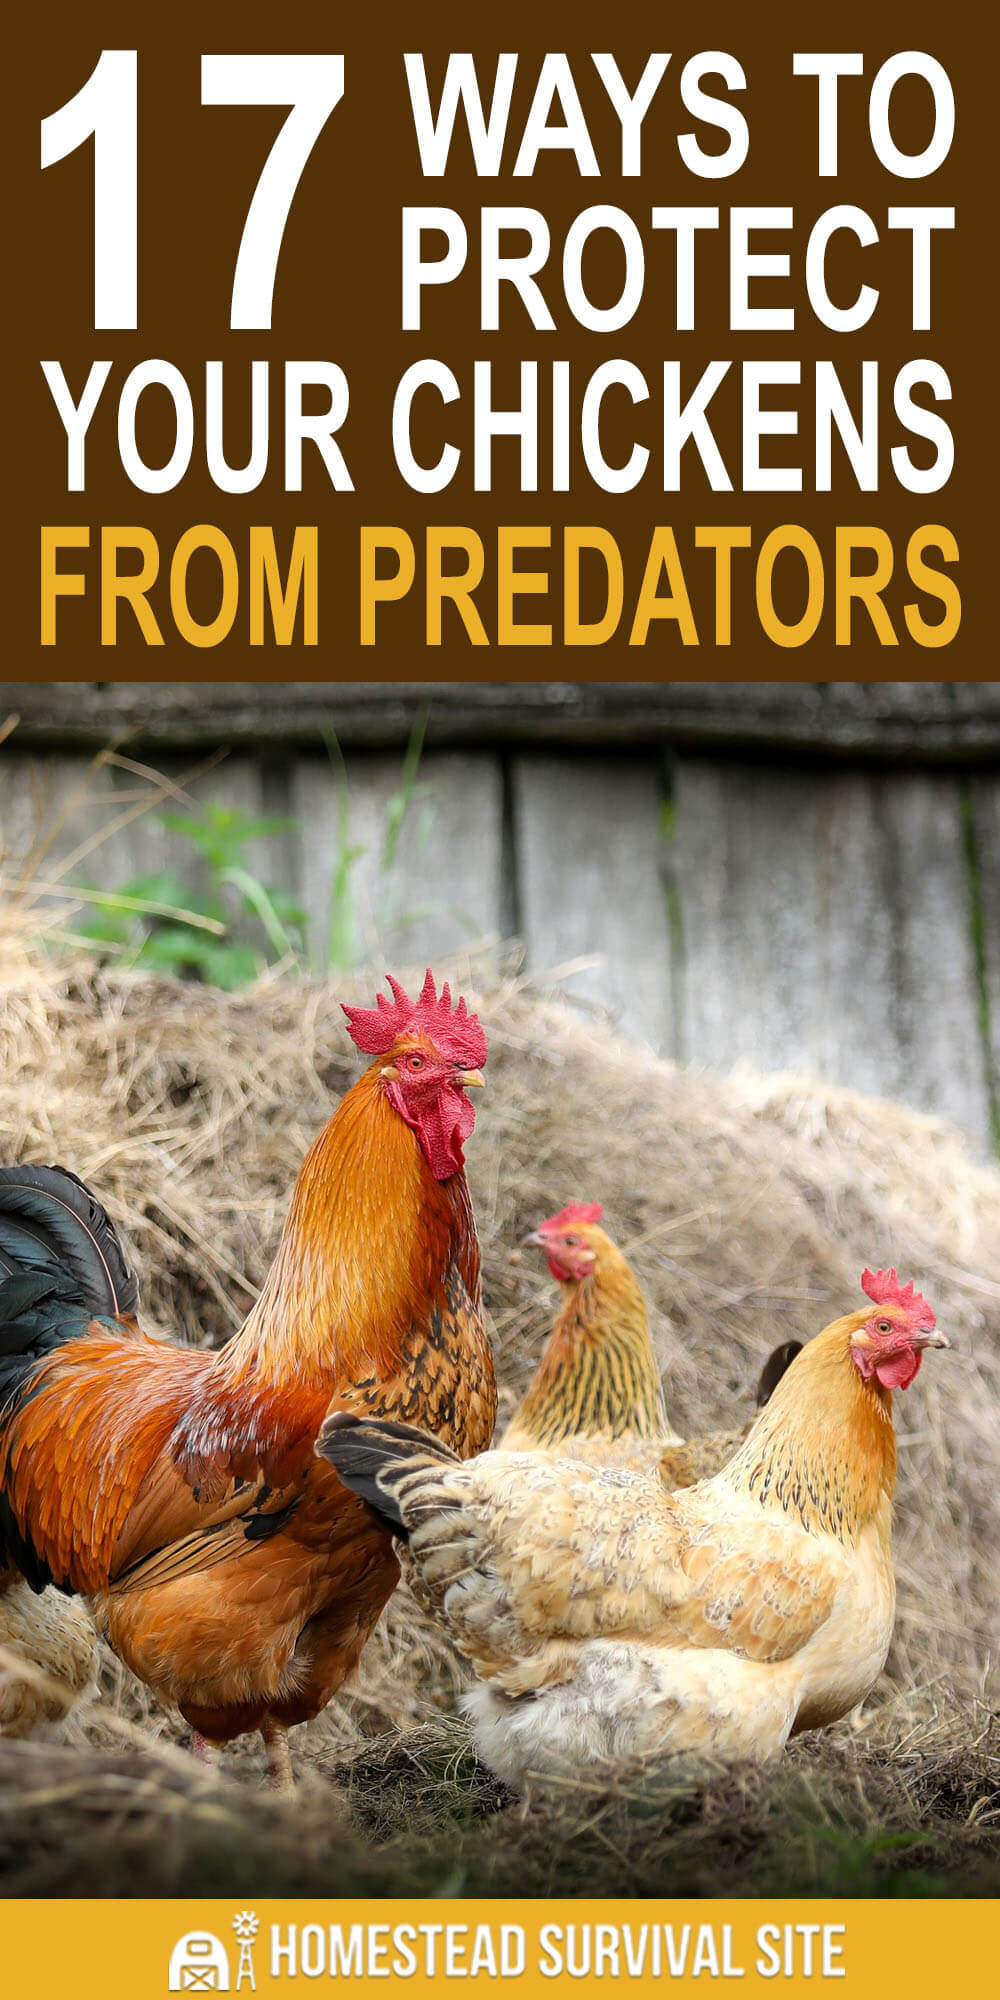 17 Ways To Protect Your Chickens From Predators